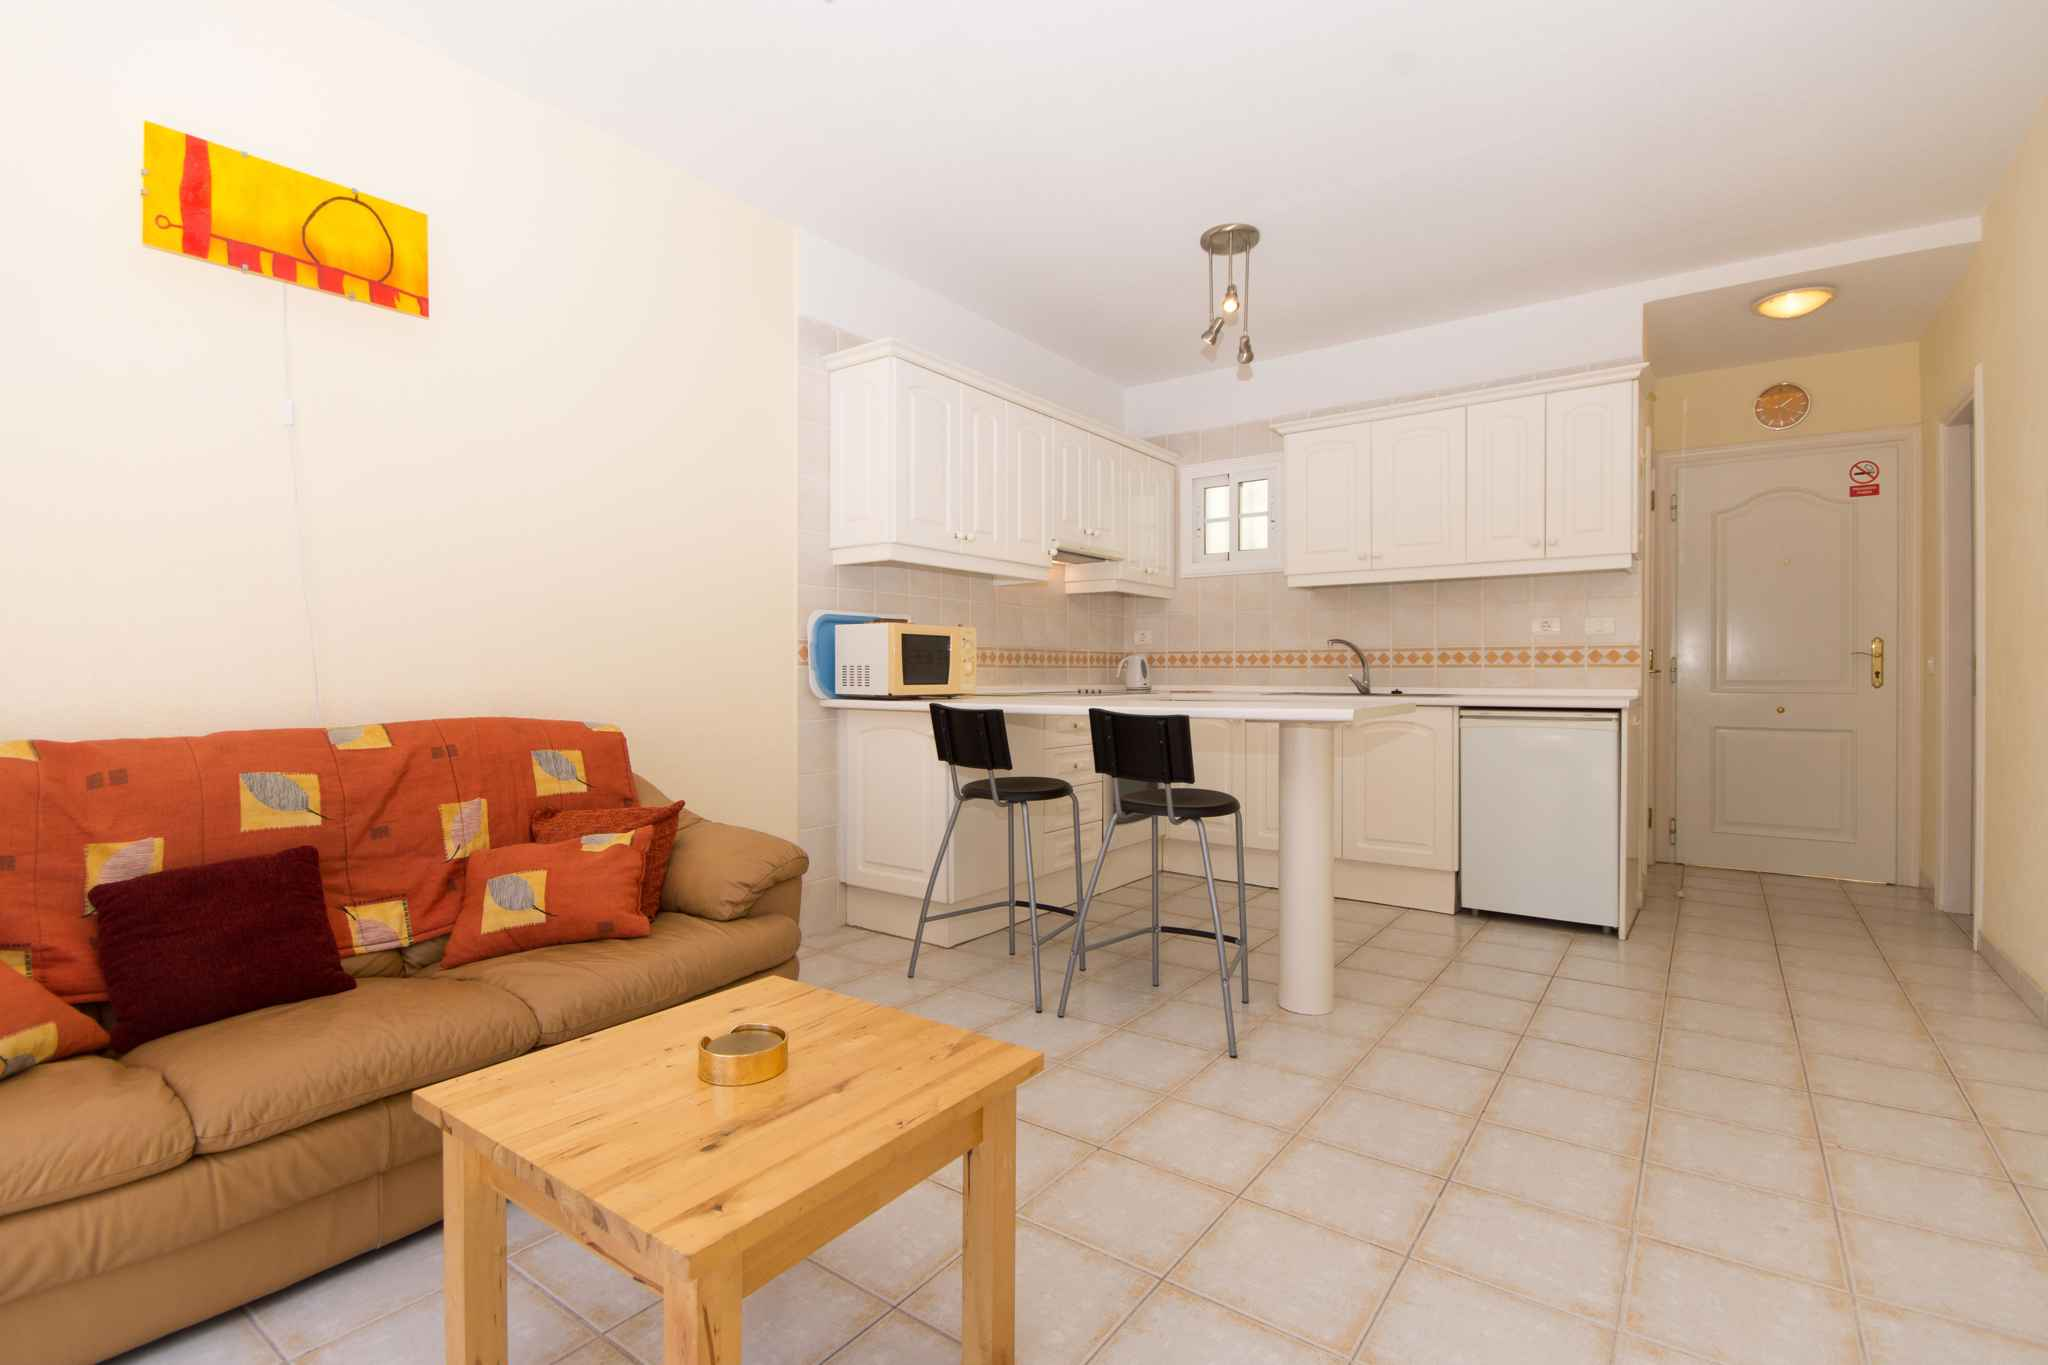 Holiday apartment mit Pool in Ferienanlage (2382979), Los Cristianos, Tenerife, Canary Islands, Spain, picture 10